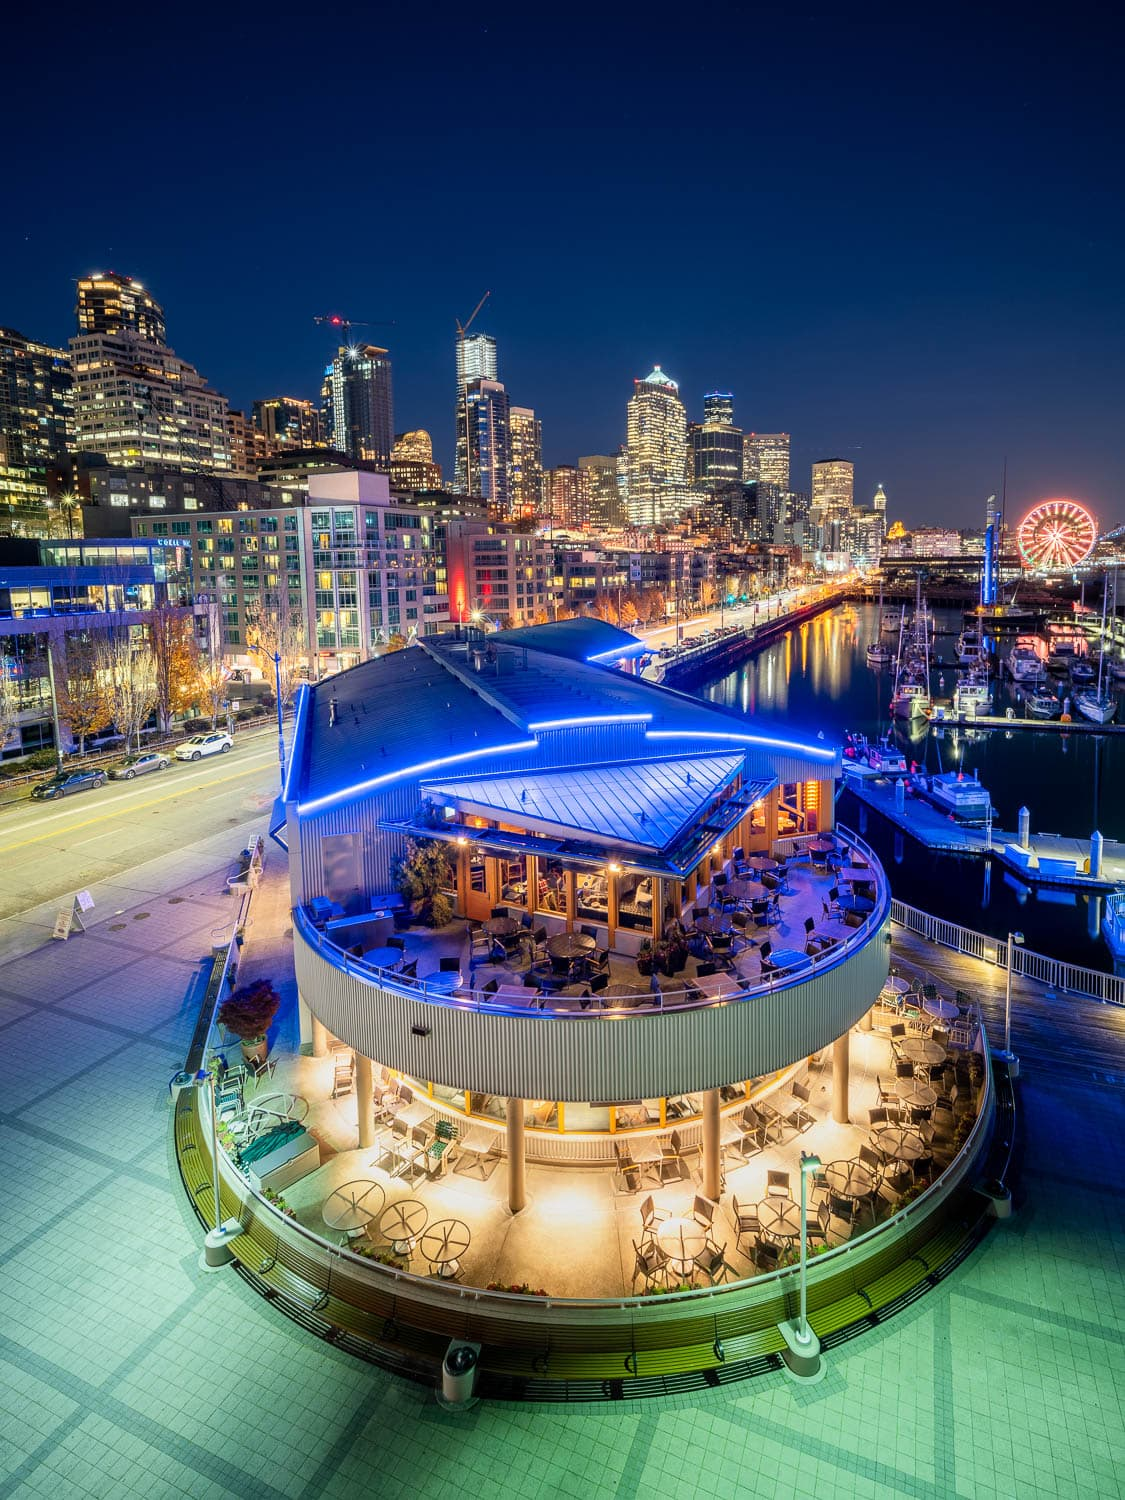 Seattle waterfront of Pier 66 and the Wheel at night